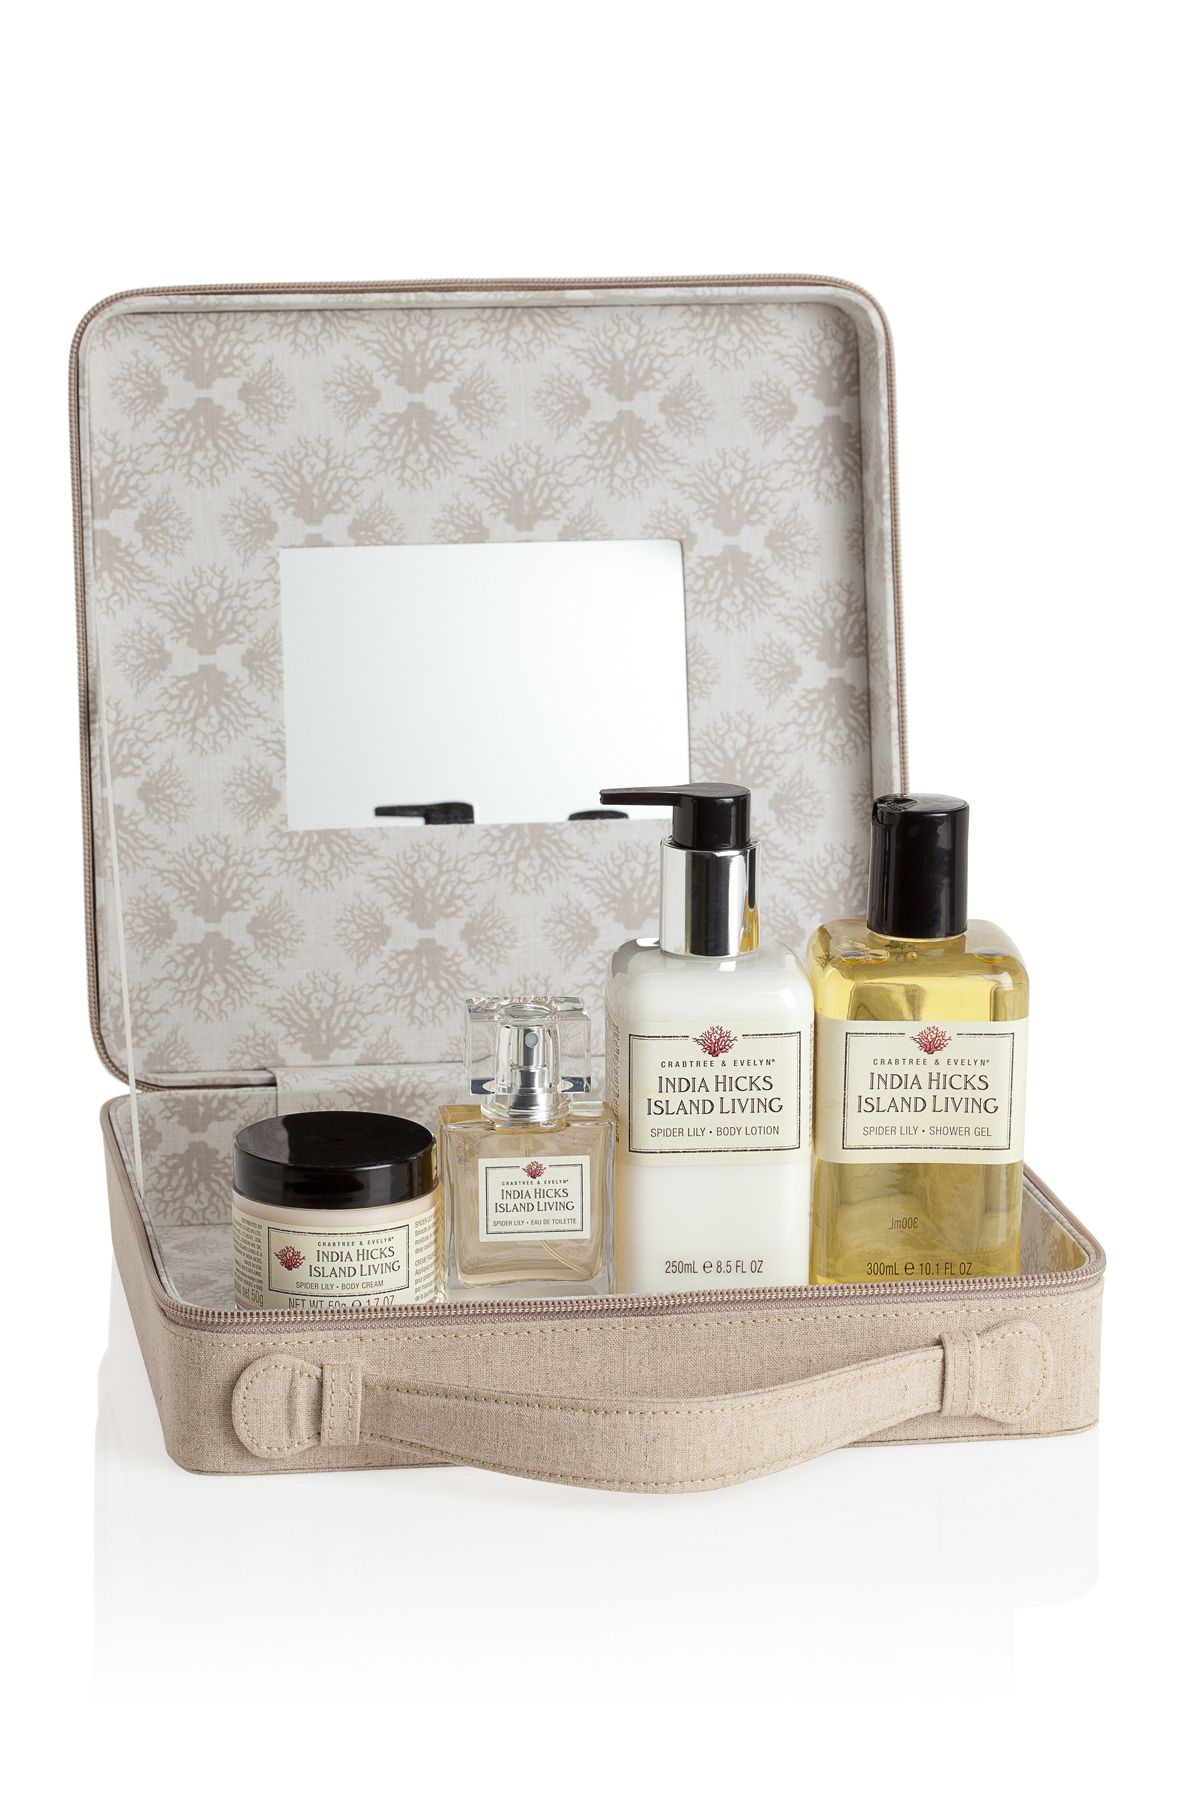 Crabtree & Evelyn India Hicks Island Living Luxury Gift Box - want!